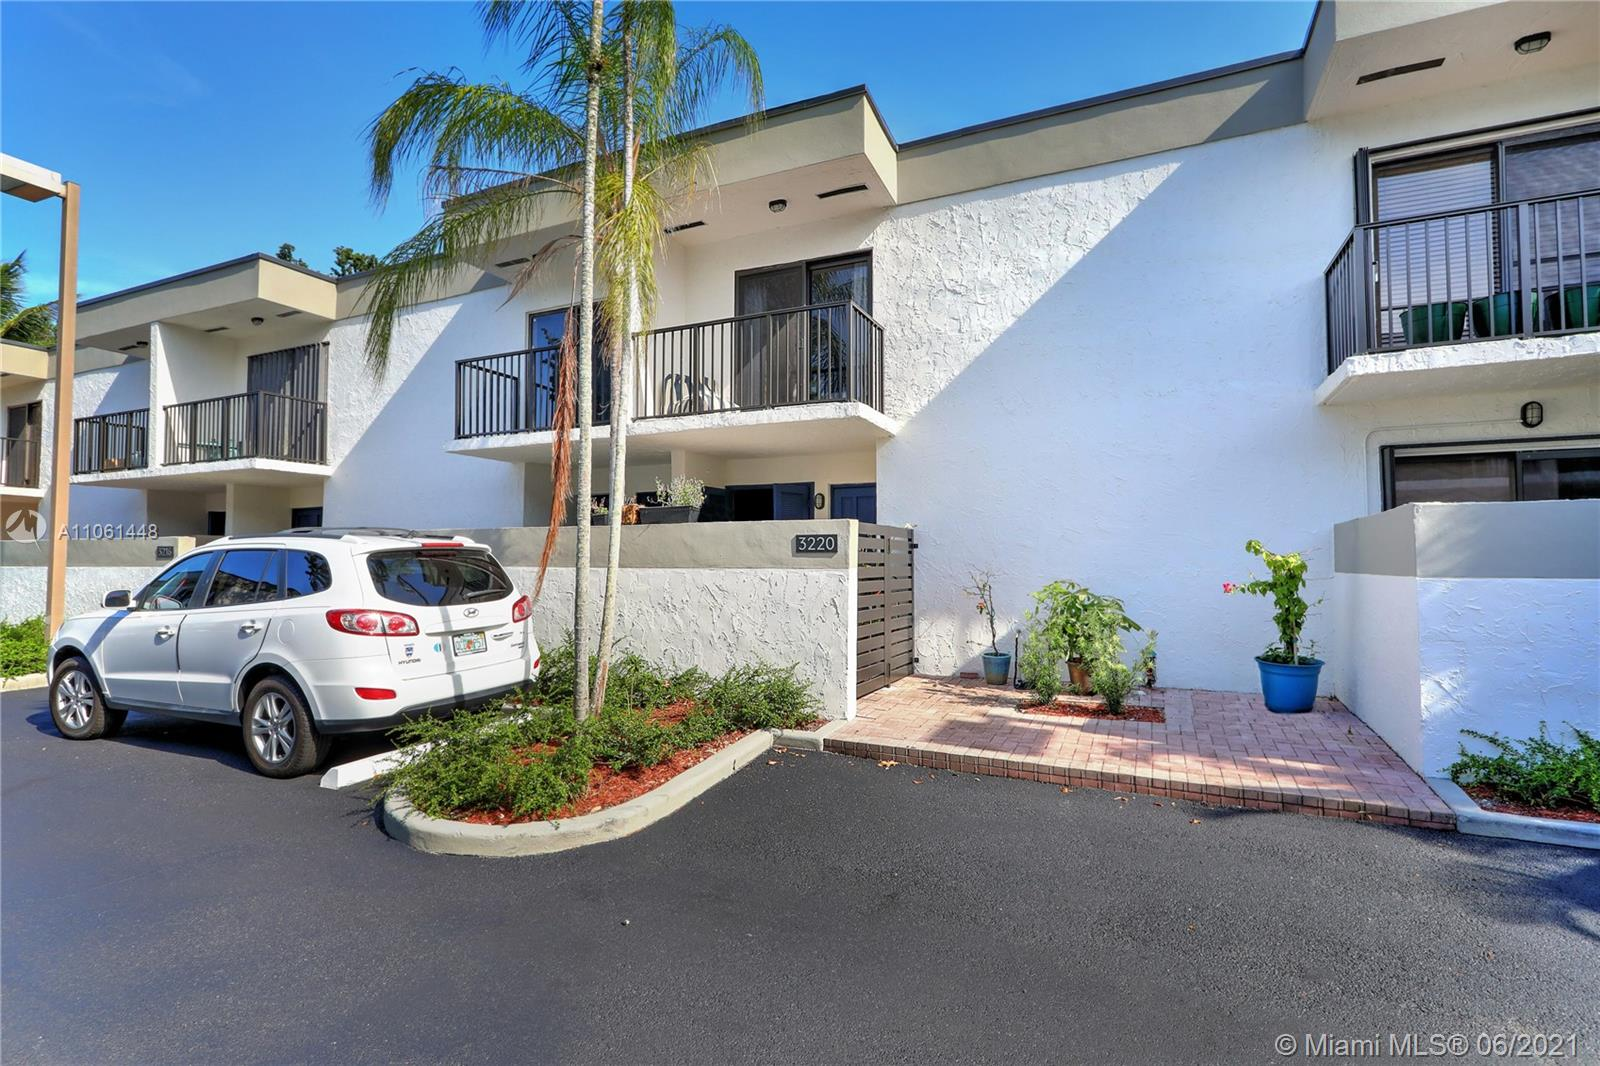 Beautifully updated 2-story Coconut Grove Townhome Condo with 2 Bed/2.5 Baths, balconies in every room, private fenced patio, all impact windows, Bamboo wood floors throughout, new AC & air ducts, renovated kitchen with wood cabinets & quartz counter tops, updated full bathrooms in both bedrooms with a half bathroom downstairs and a laundry room with large washer and dryer. The community is gated and within walking distance to Milam's Supermarket, Homedepot, Cocowalk and Metro Station.